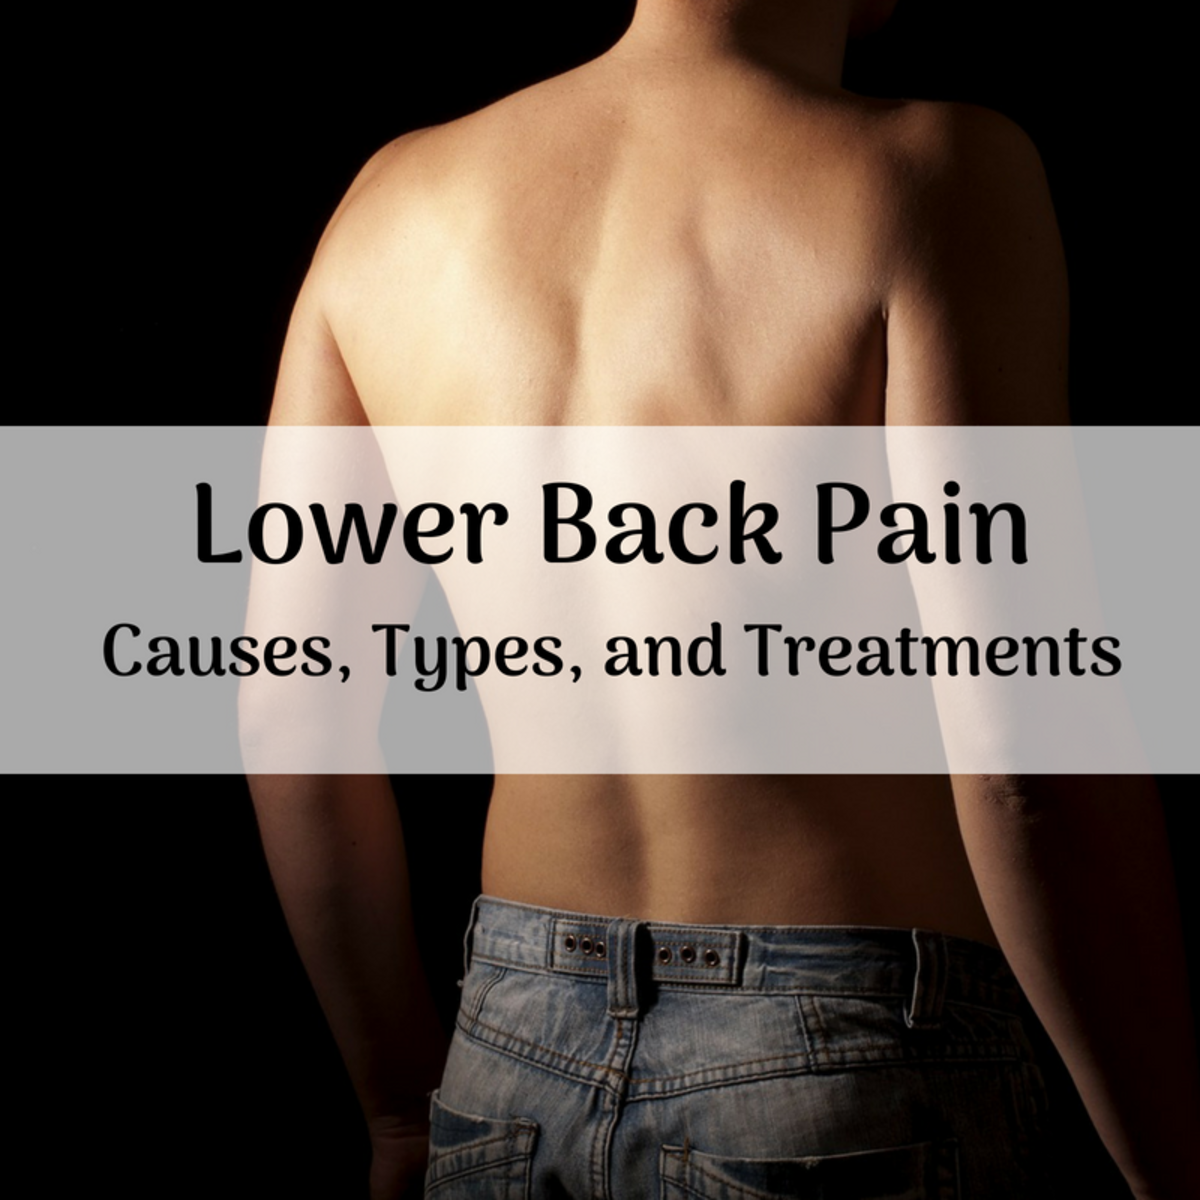 It's important to take the necessary steps to improve and relieve back pain.